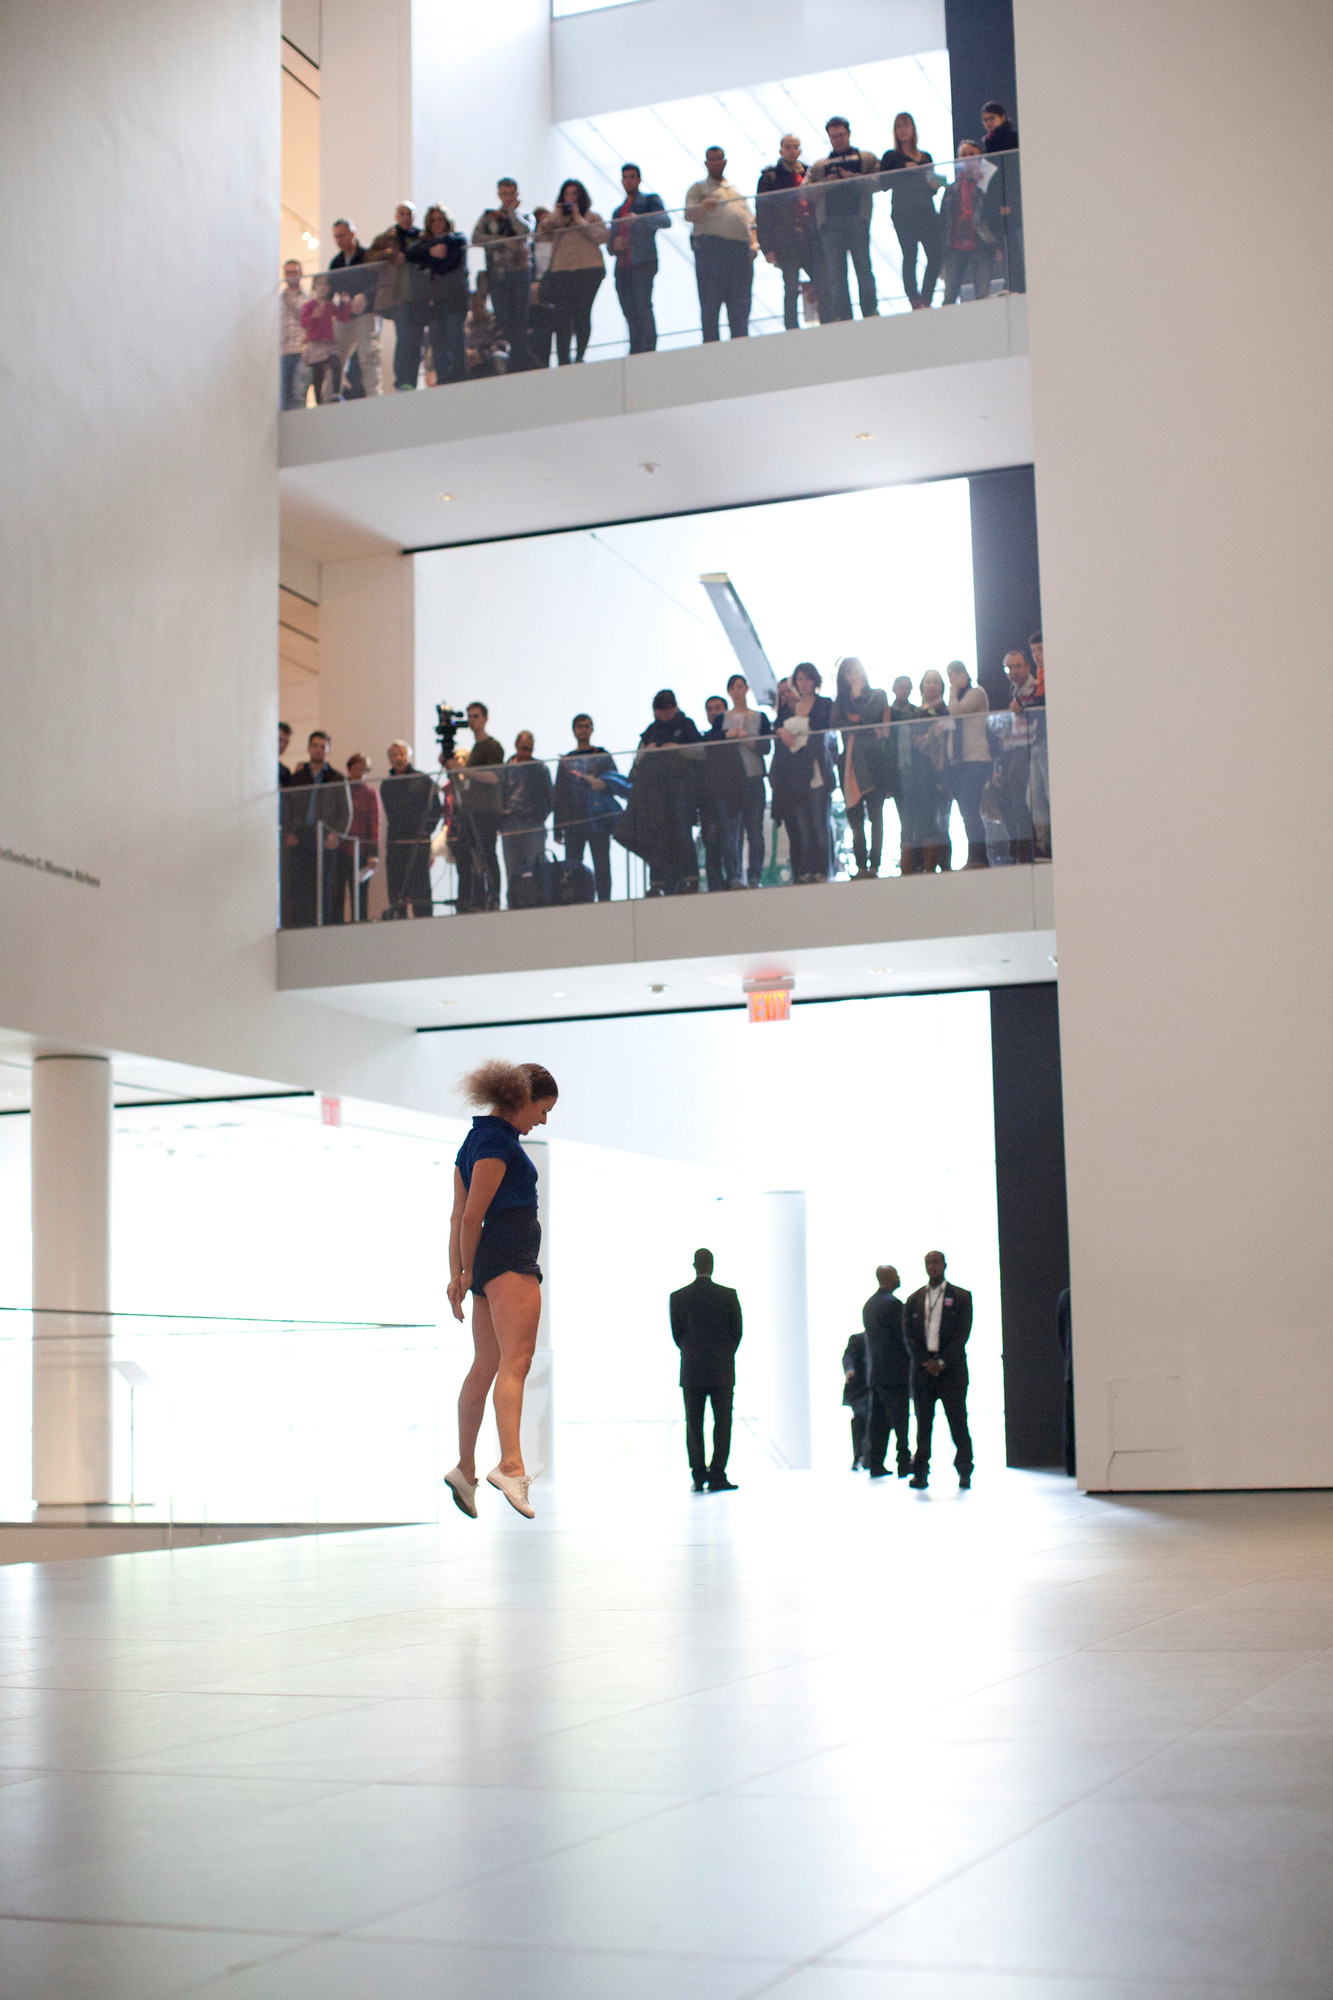 Performance of Sarah Michelson's Devotion Study #3 (2012) at The Museum of Modern Art, November 2012. Part of Some sweet day (October 15–November 04, 2012). © 2012 Museum of Modern Art, New York. Photo: Paula Court